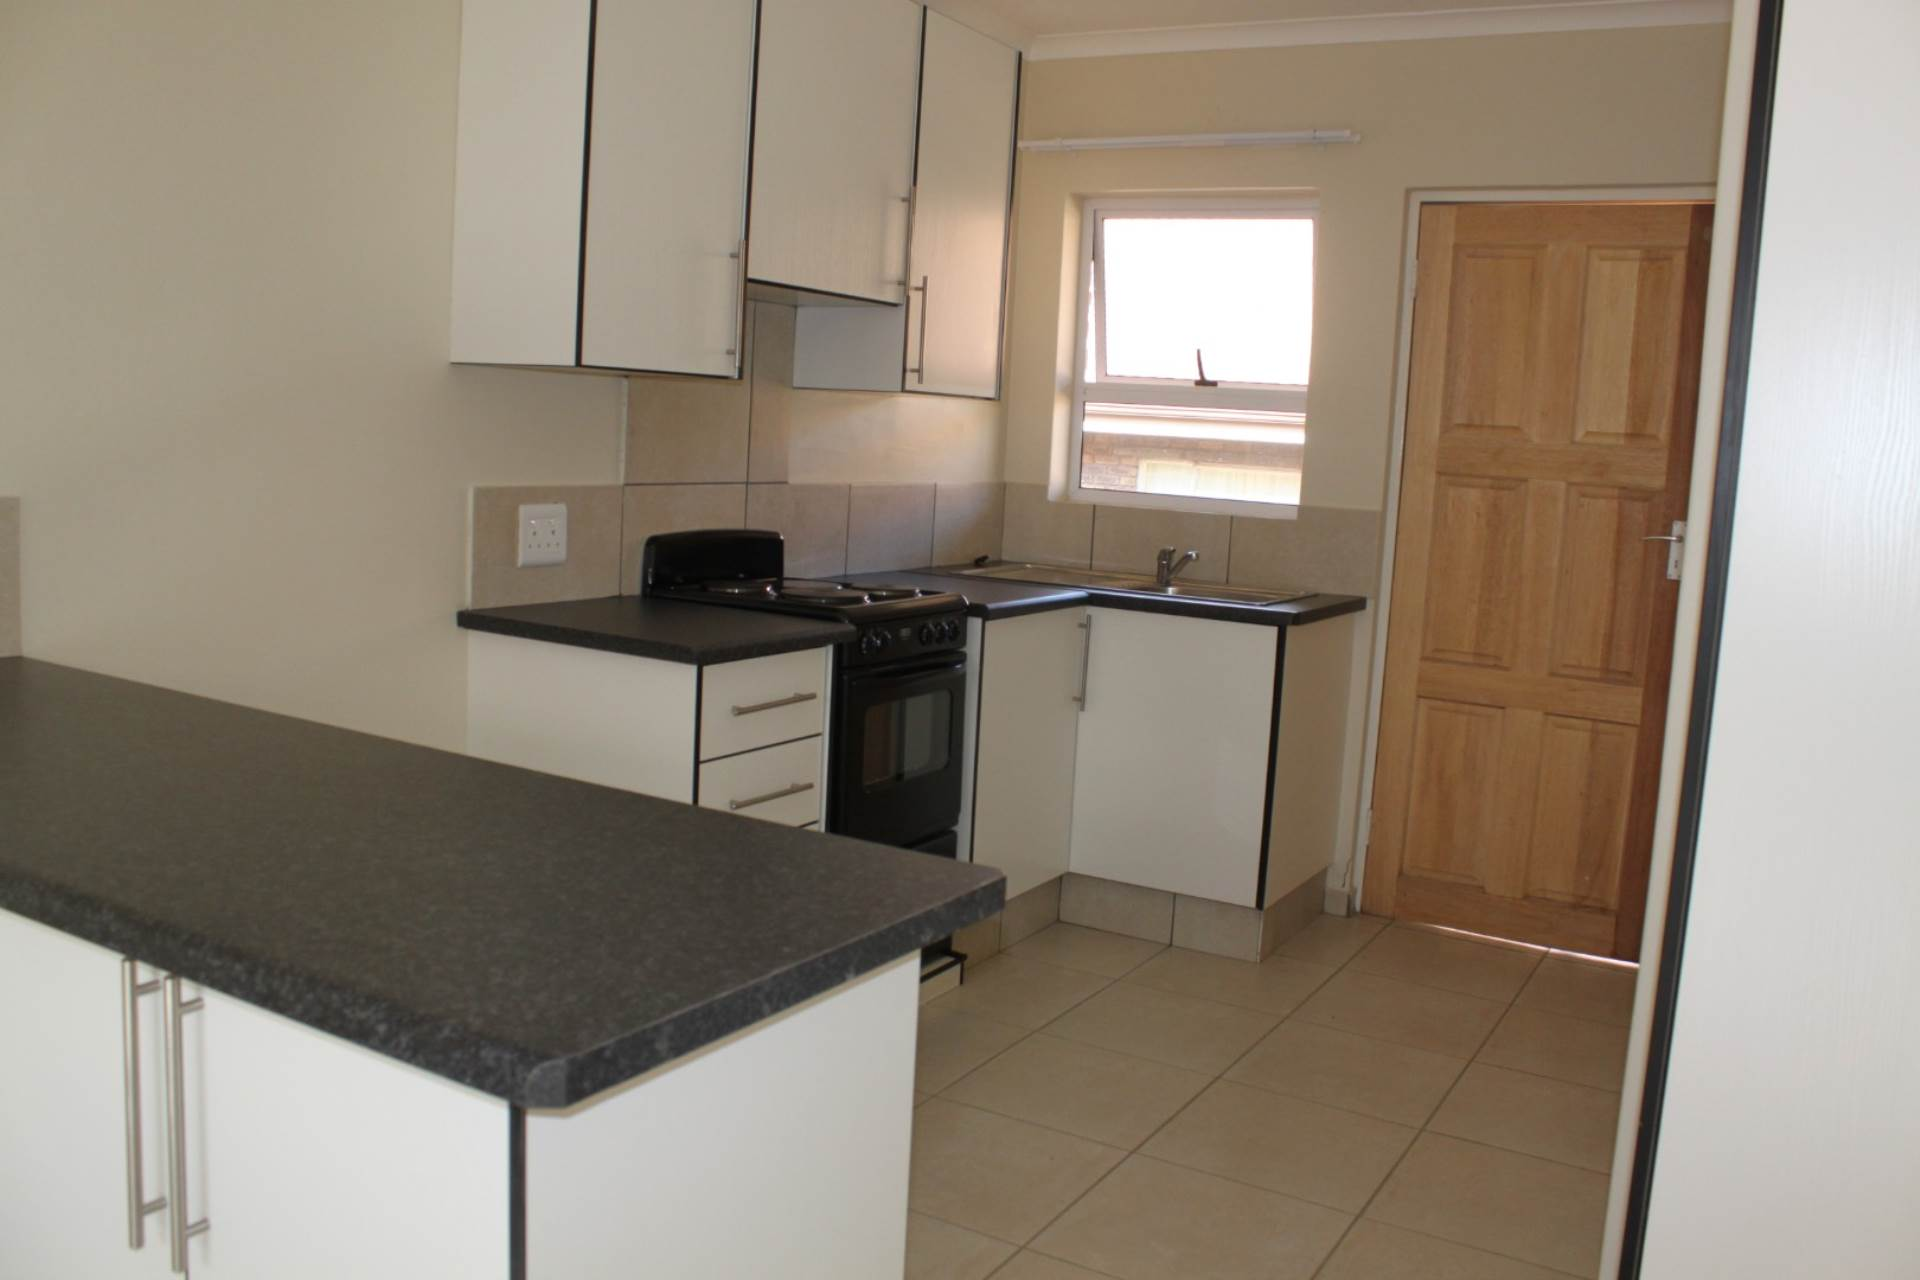 2 BedroomApartment To Rent In Kempton Park